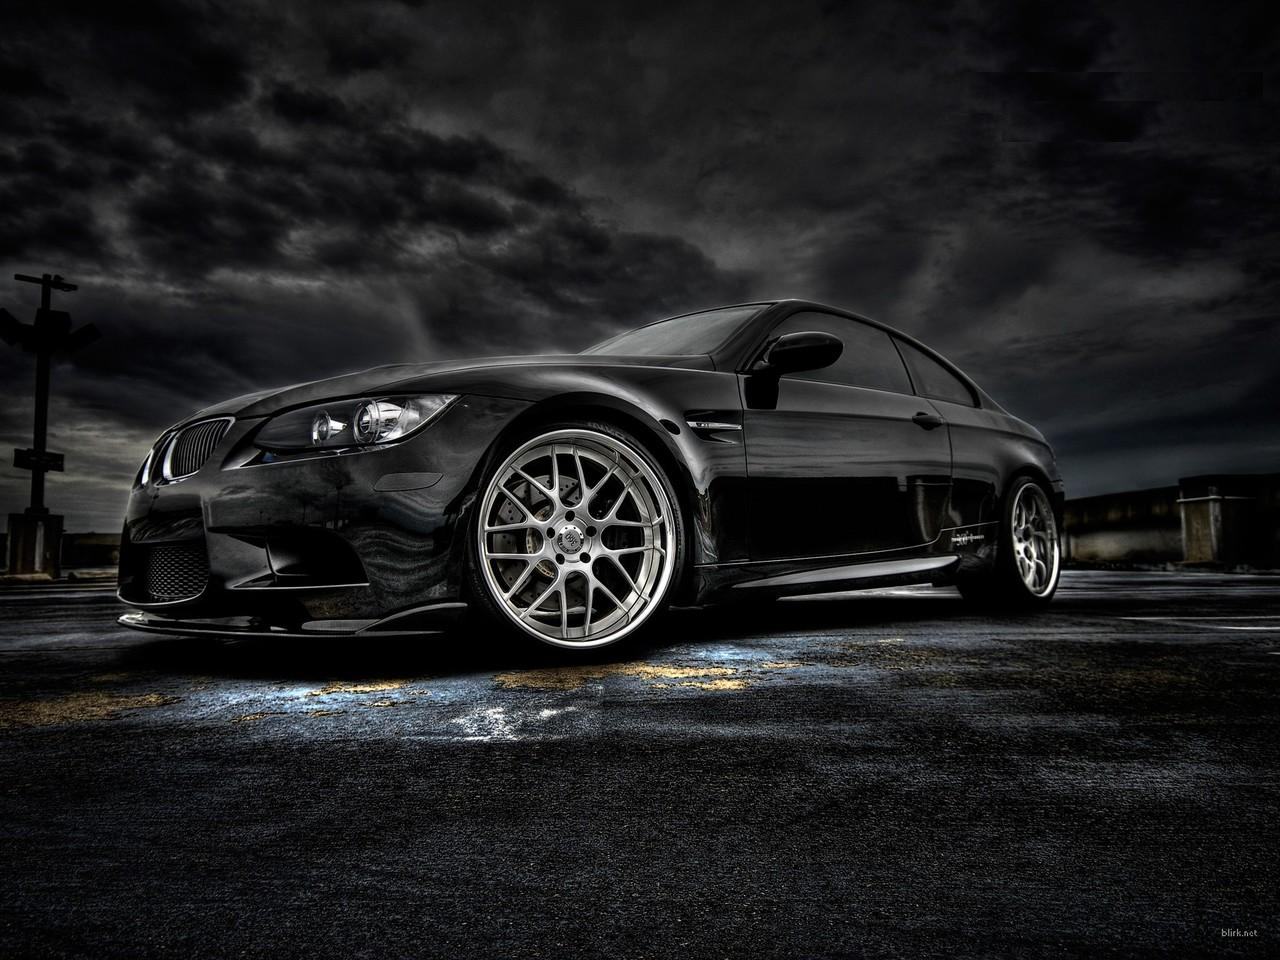 A2z wallpapers cars wallpapers cars wallpapers voltagebd Image collections